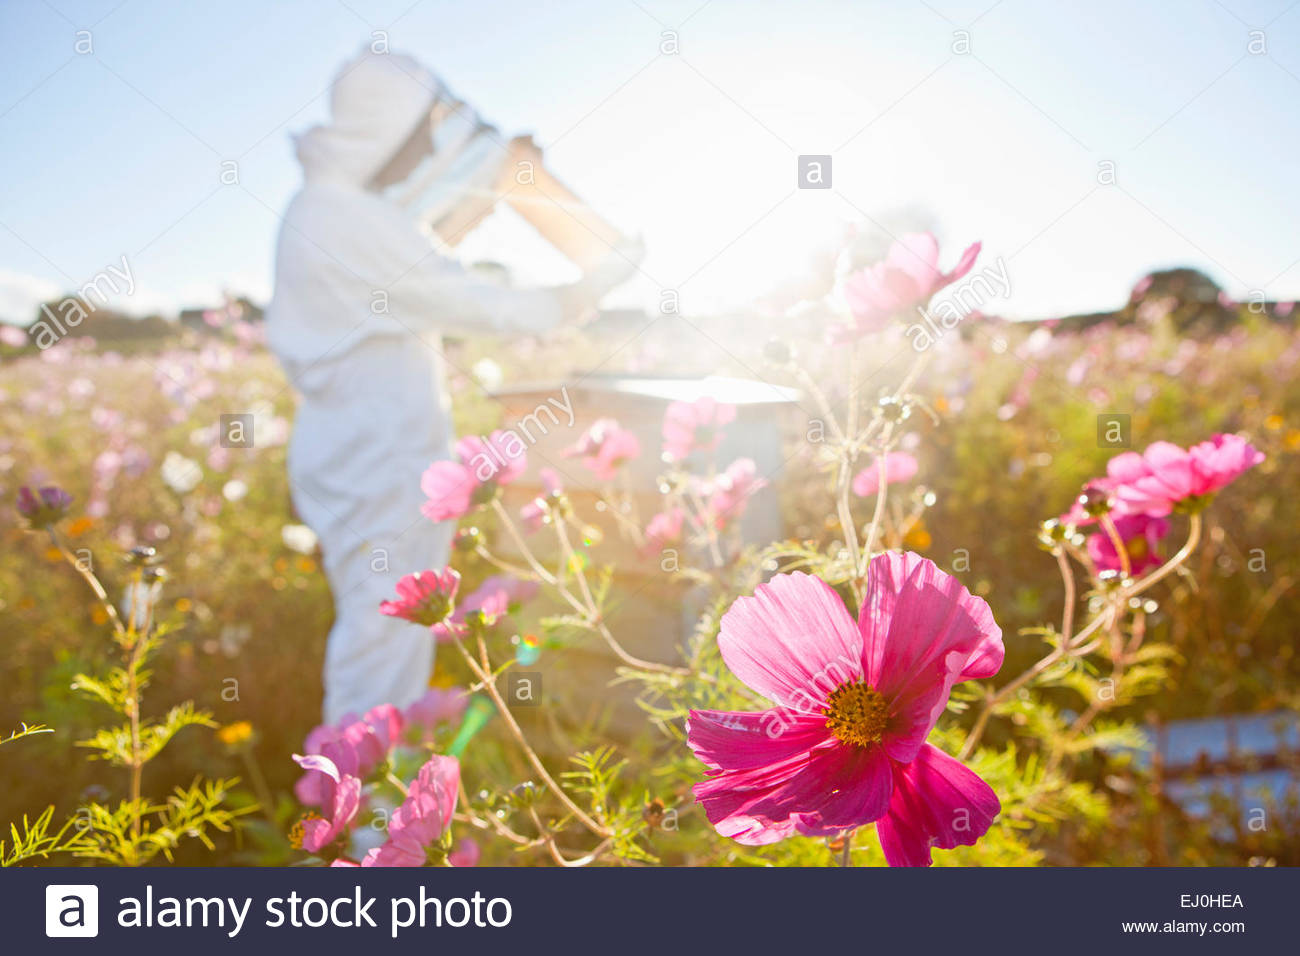 Beekeeper, holding beehive frame of honey up to the sun, in field full of flowers - Stock Image